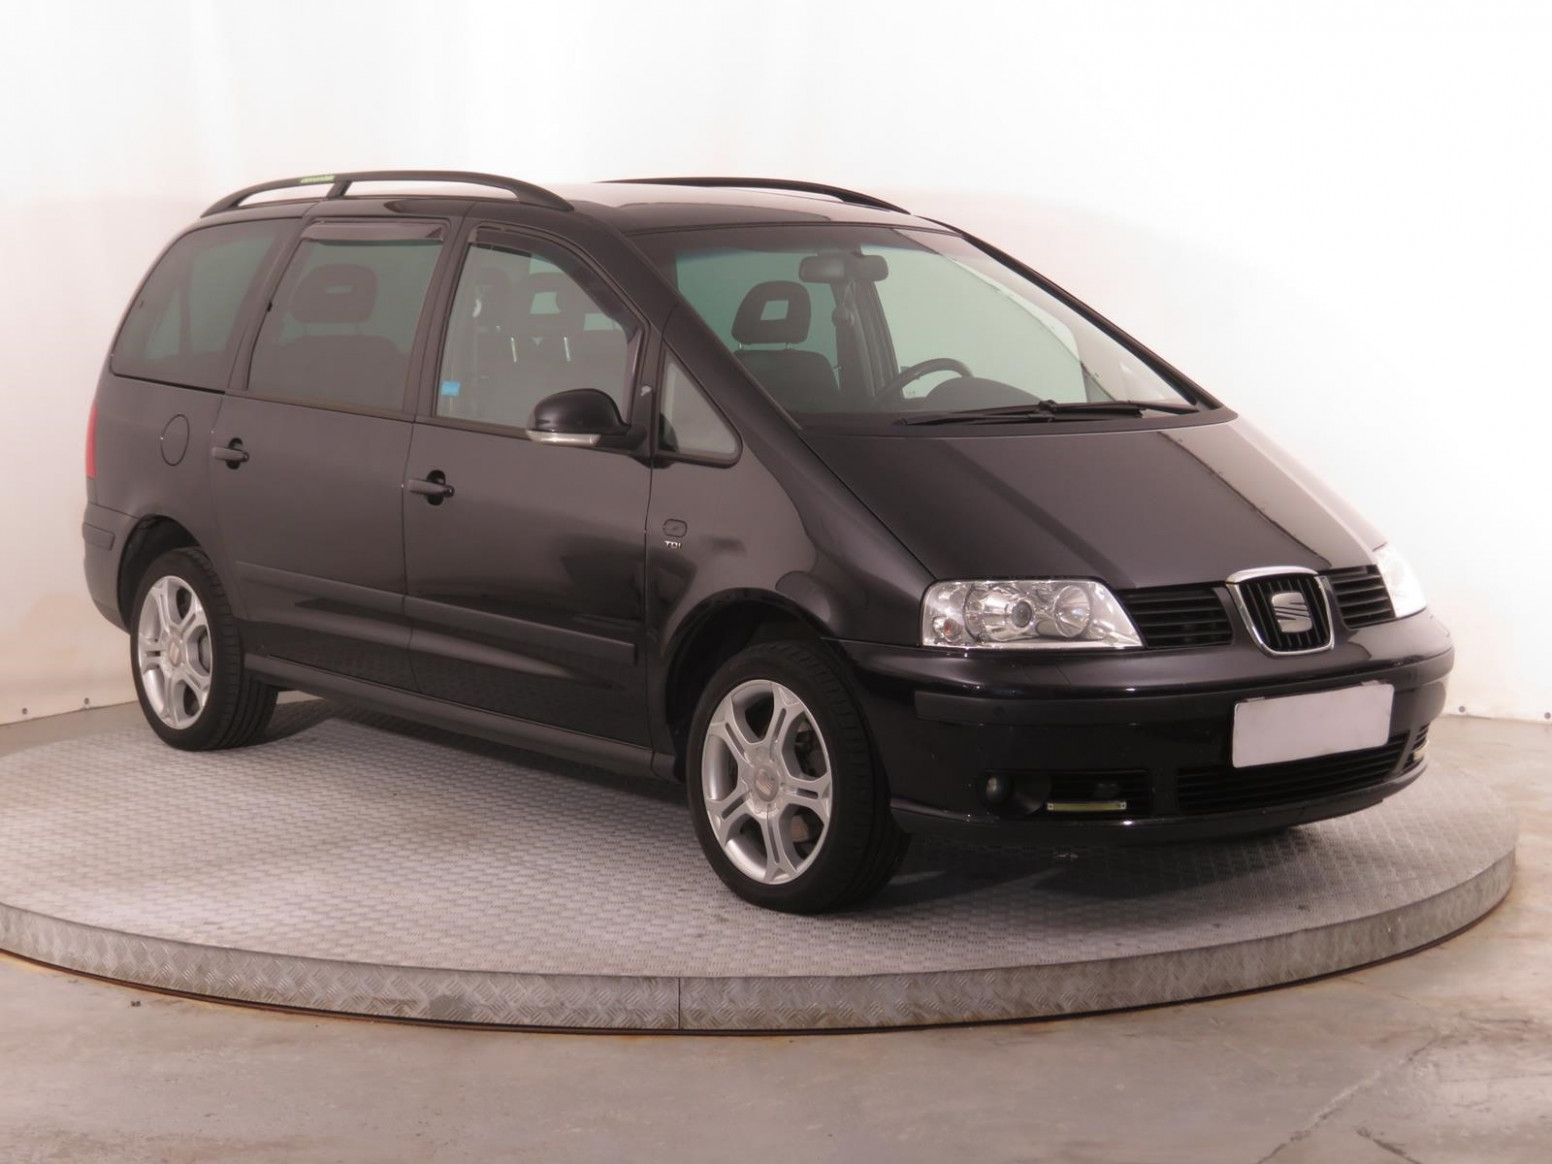 Redesign and Review 2022 Seat Alhambra